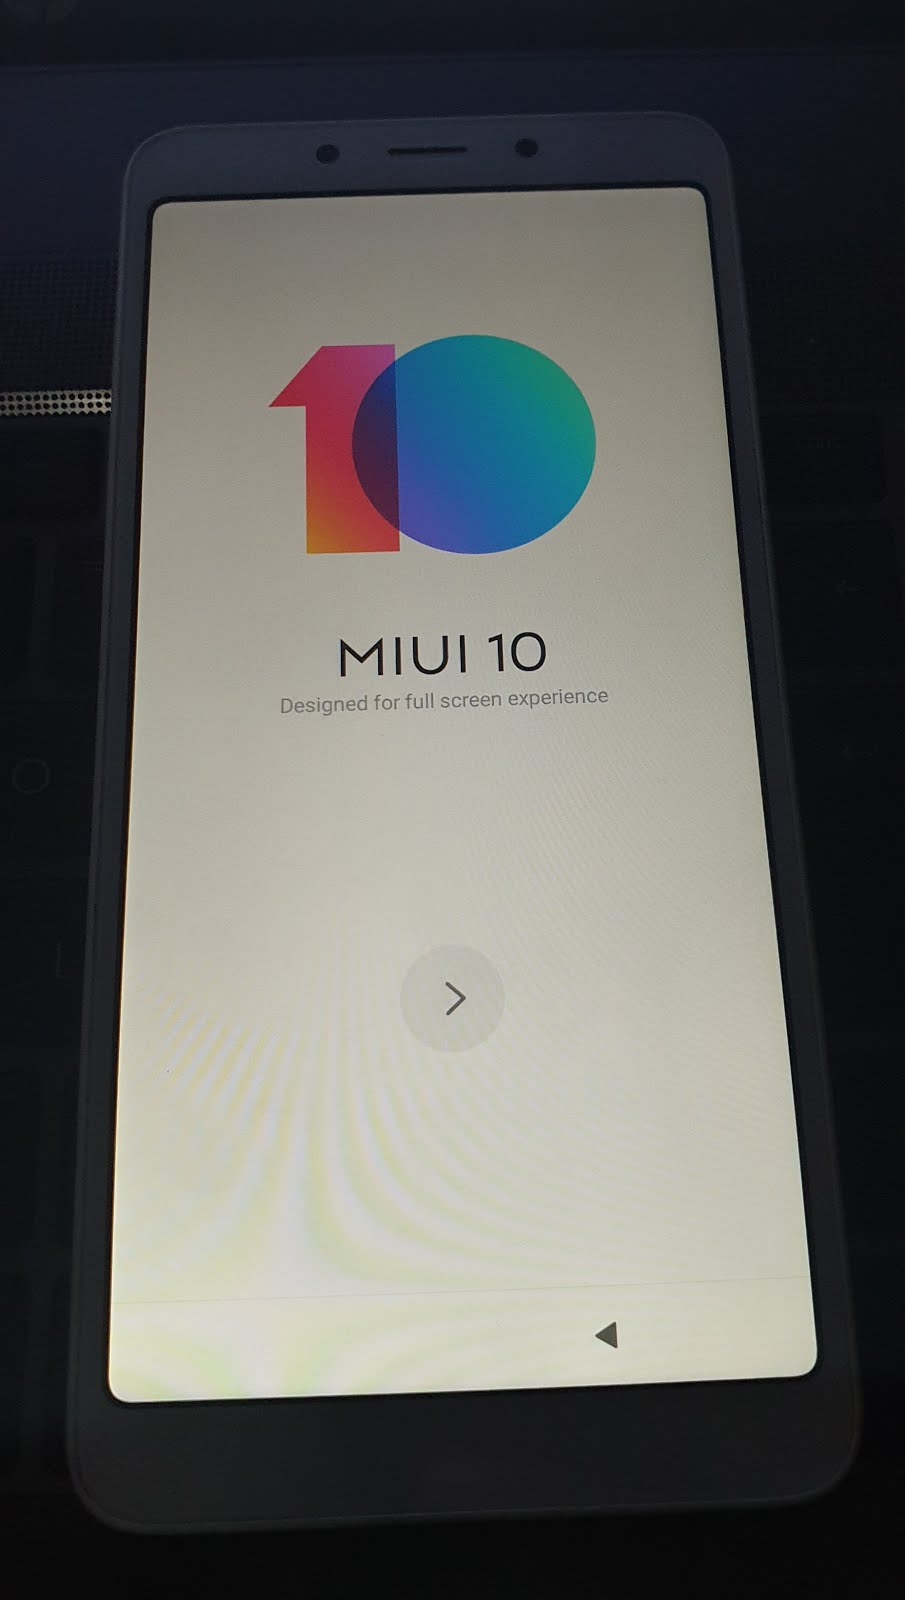 MI ACCOUNT MIUI 10 BYPASS (THIS DEVICE IS LOCKED) FINAL STEP